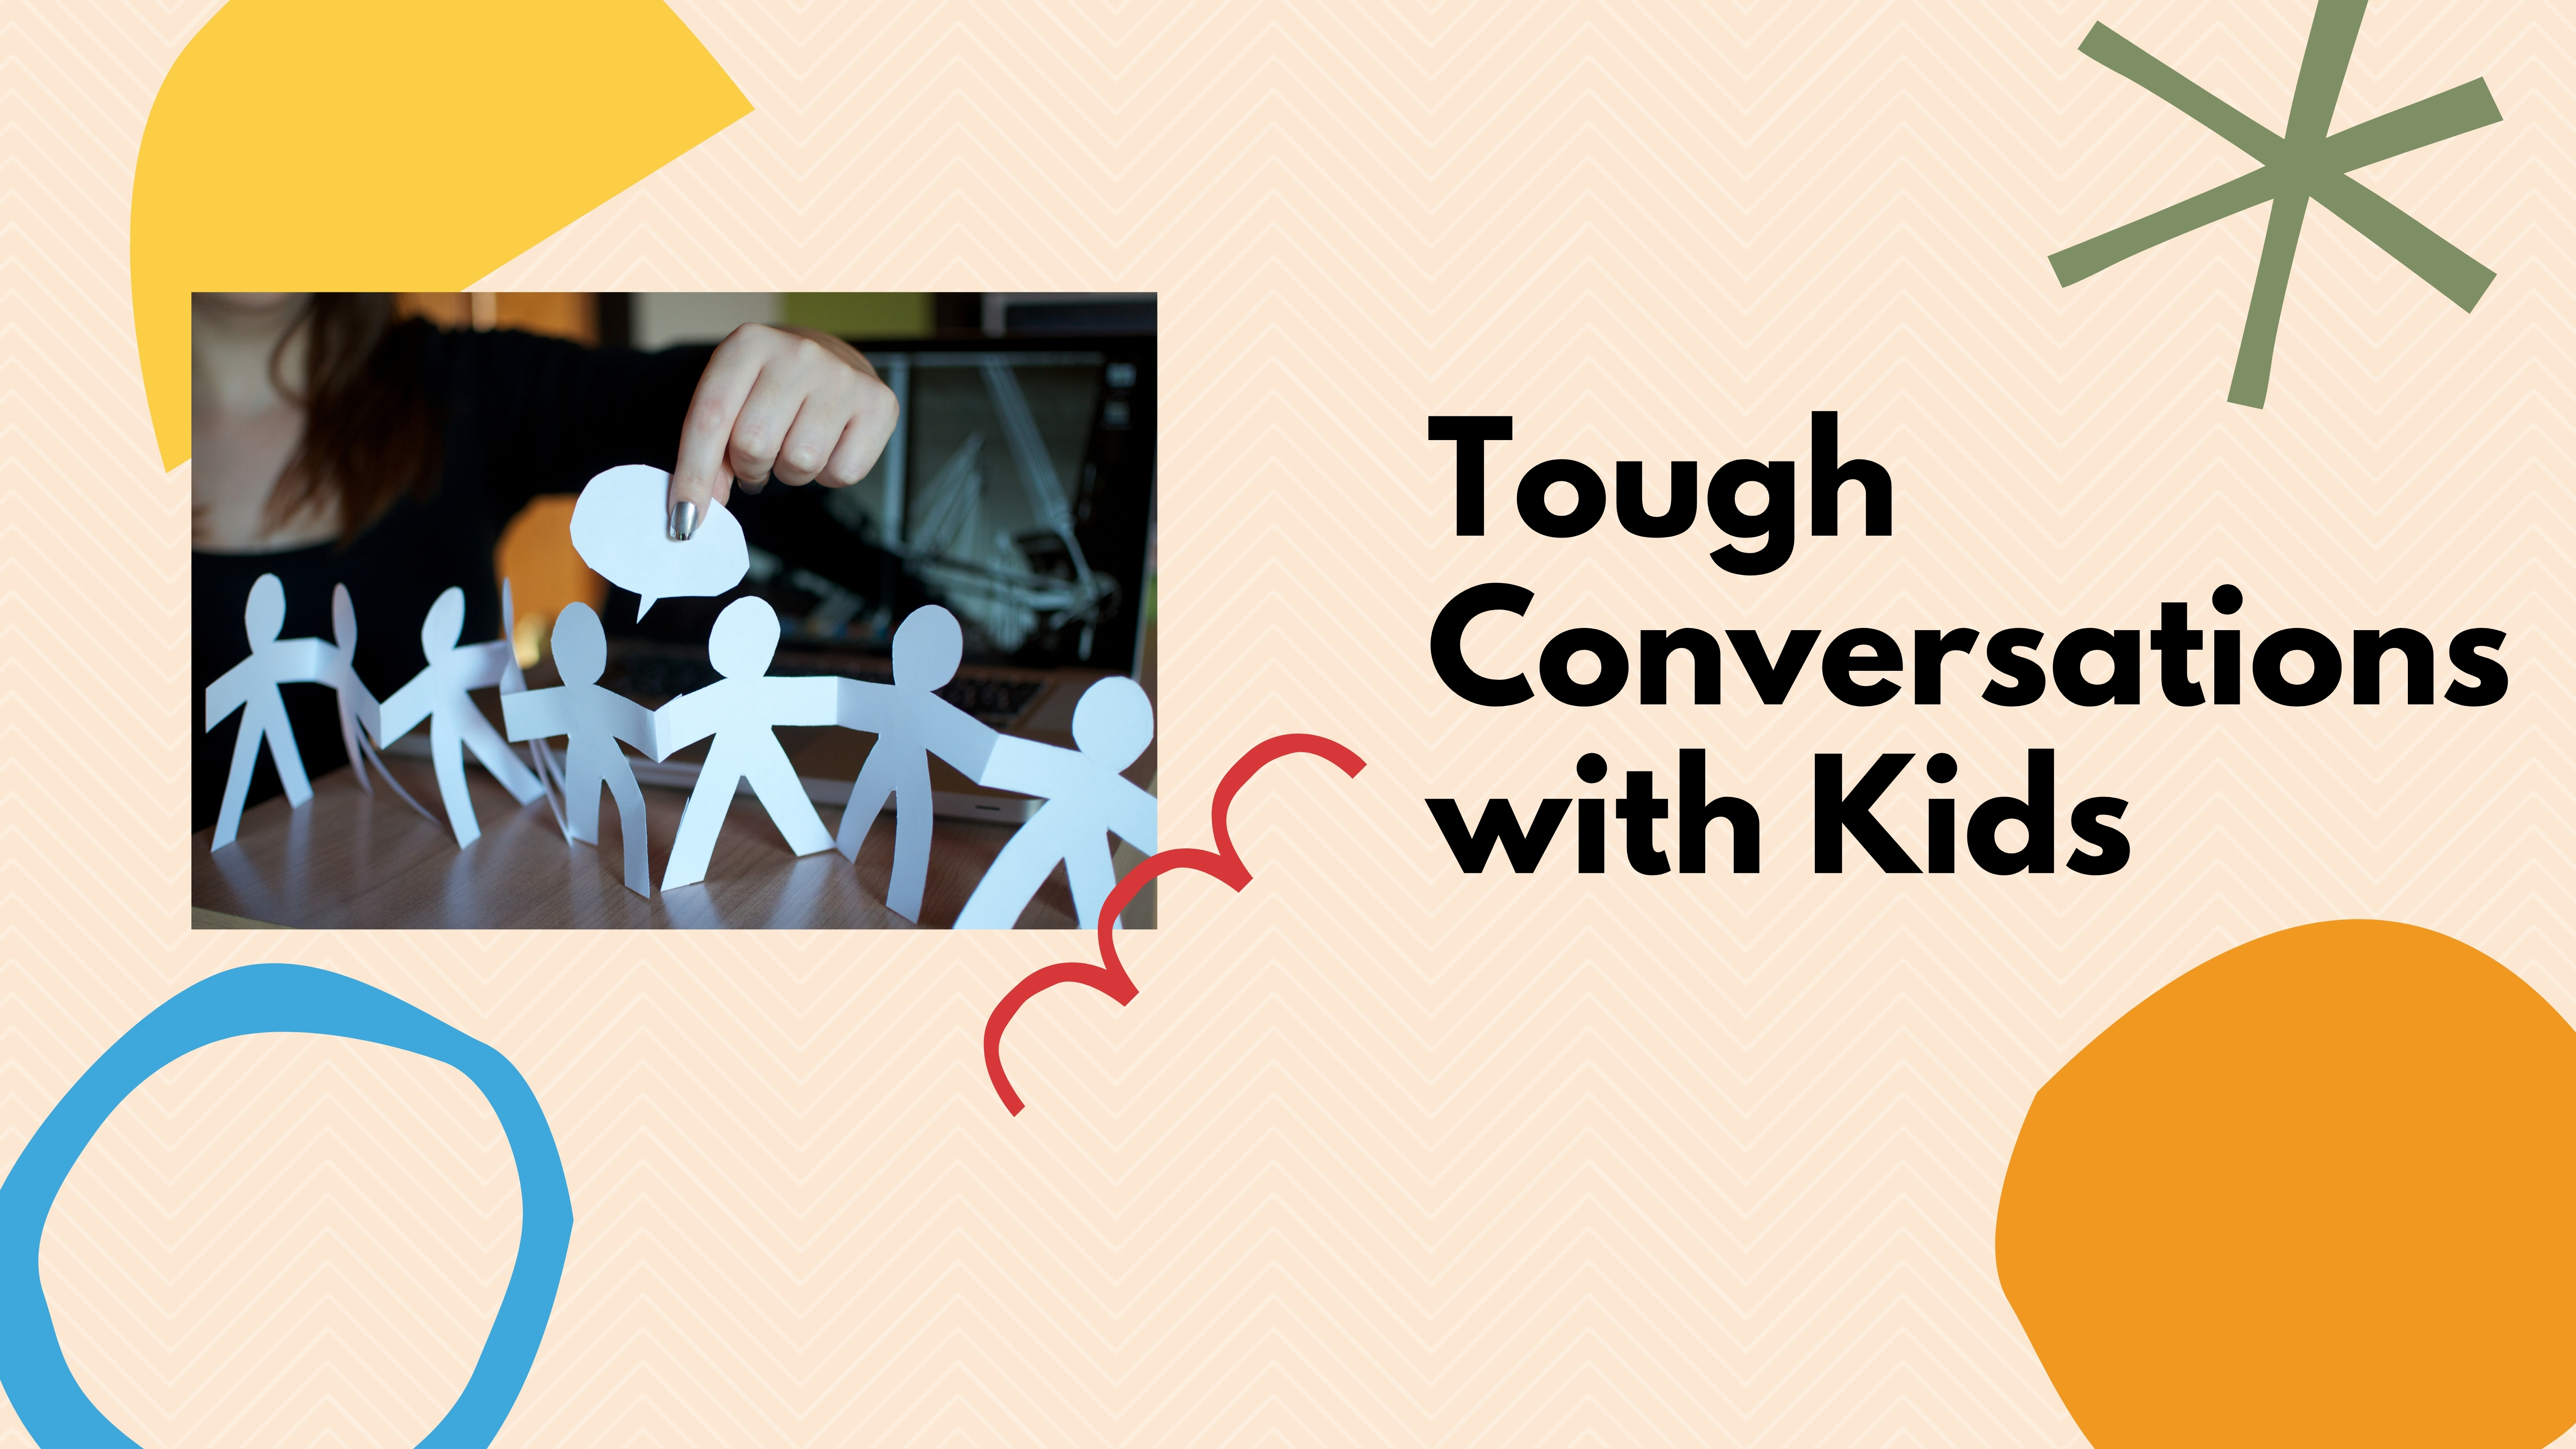 Tough Converations with Kids